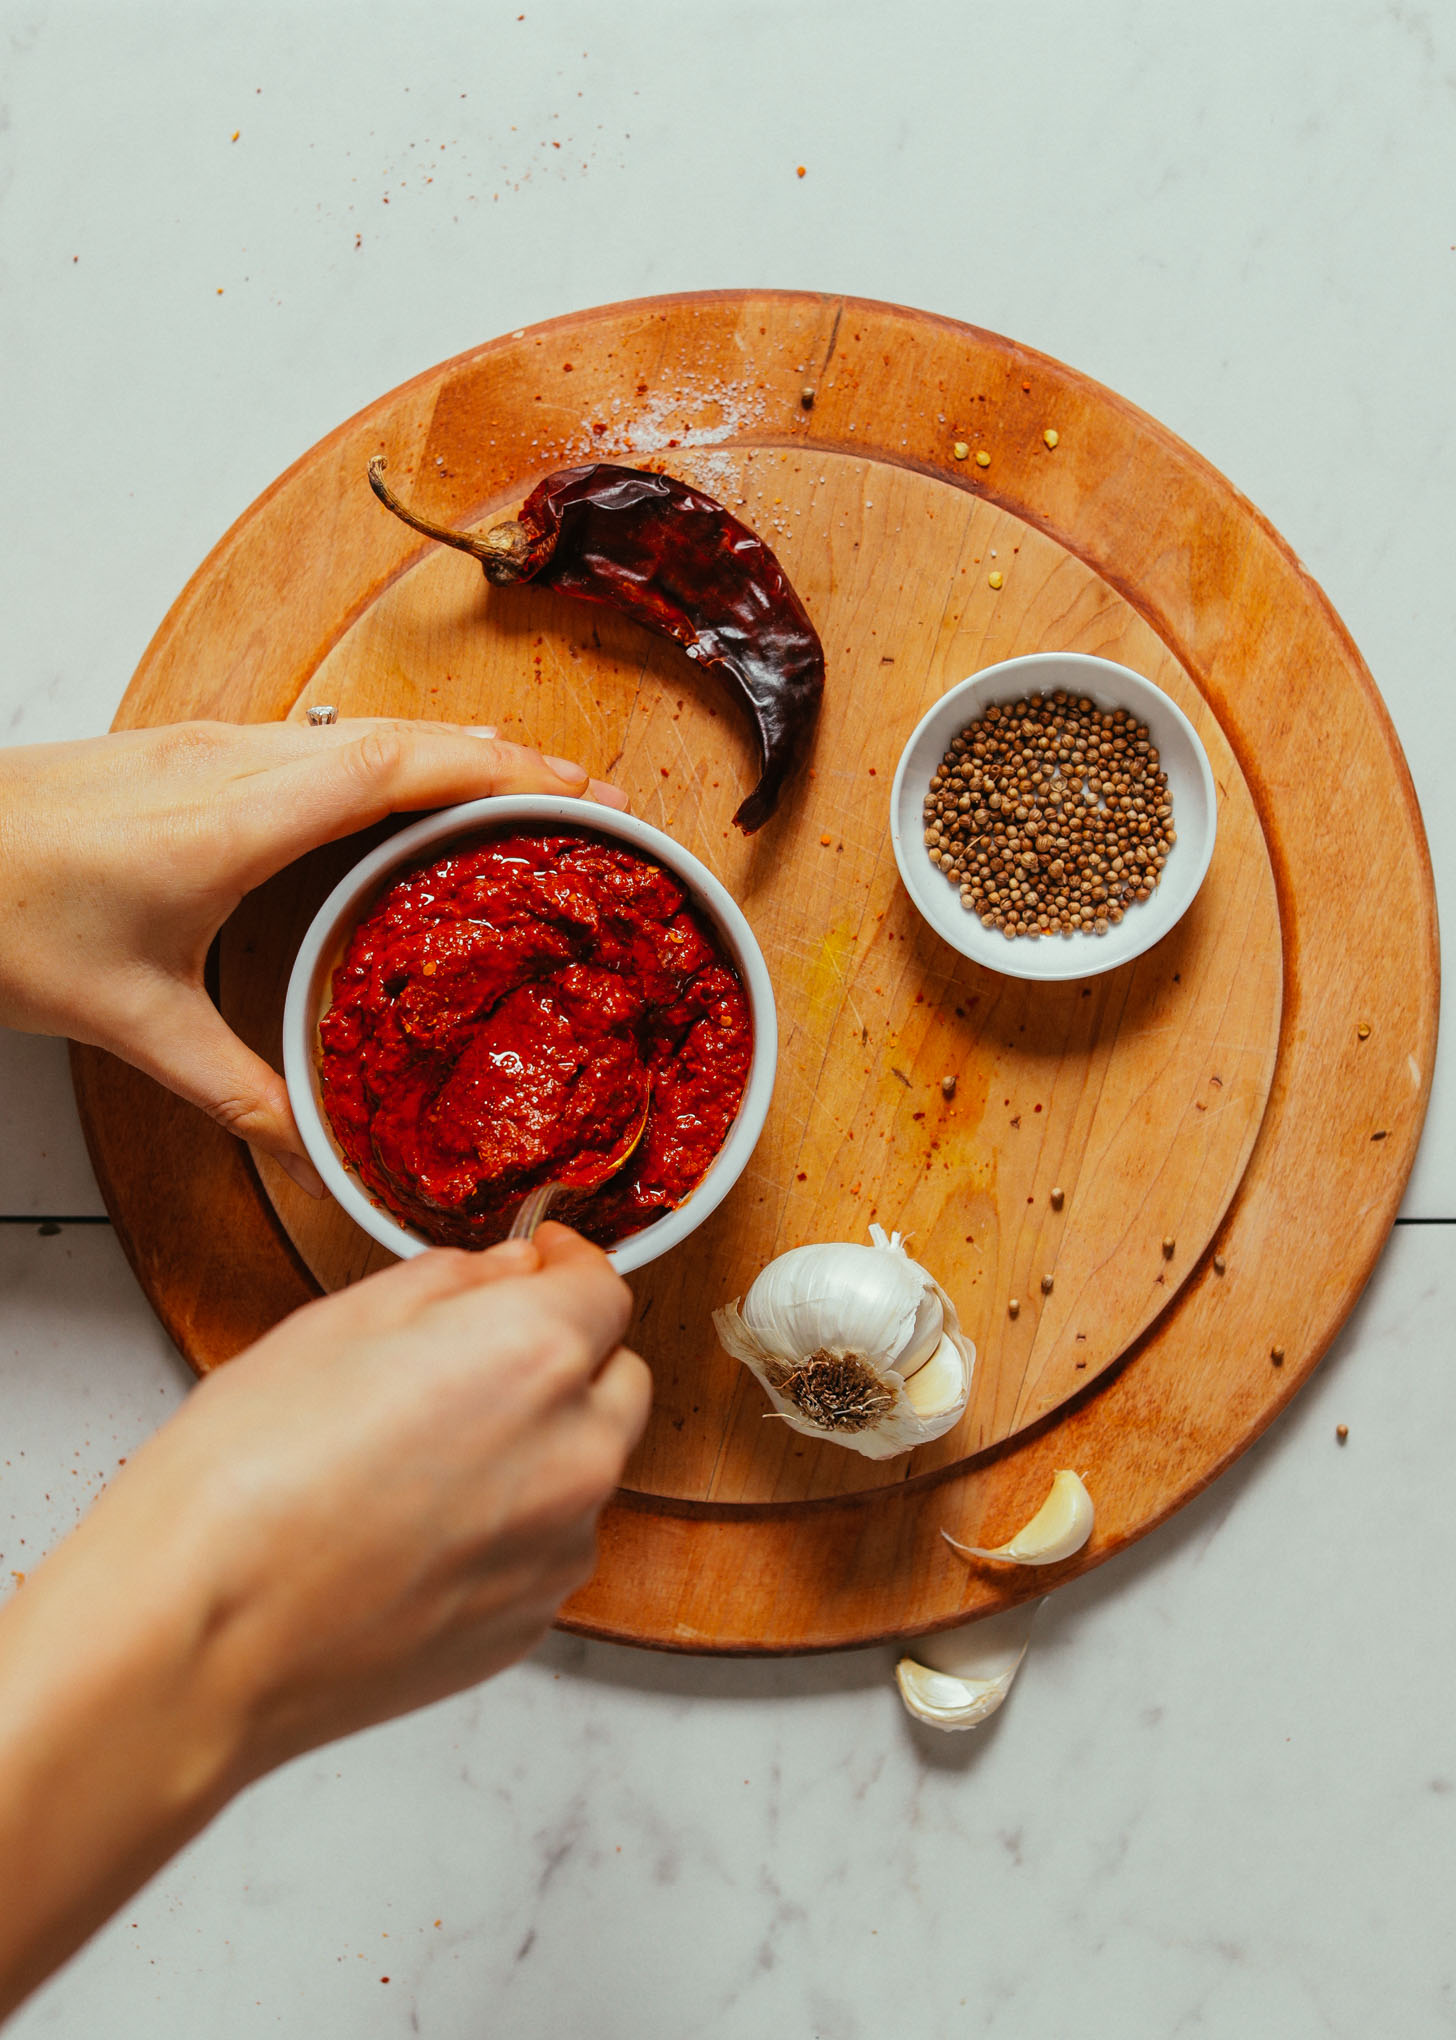 Overhead image of harissa paste in a white dish on a cutting board with a spoon stirring the sauce, and coriander, garlic, and peppers on the side